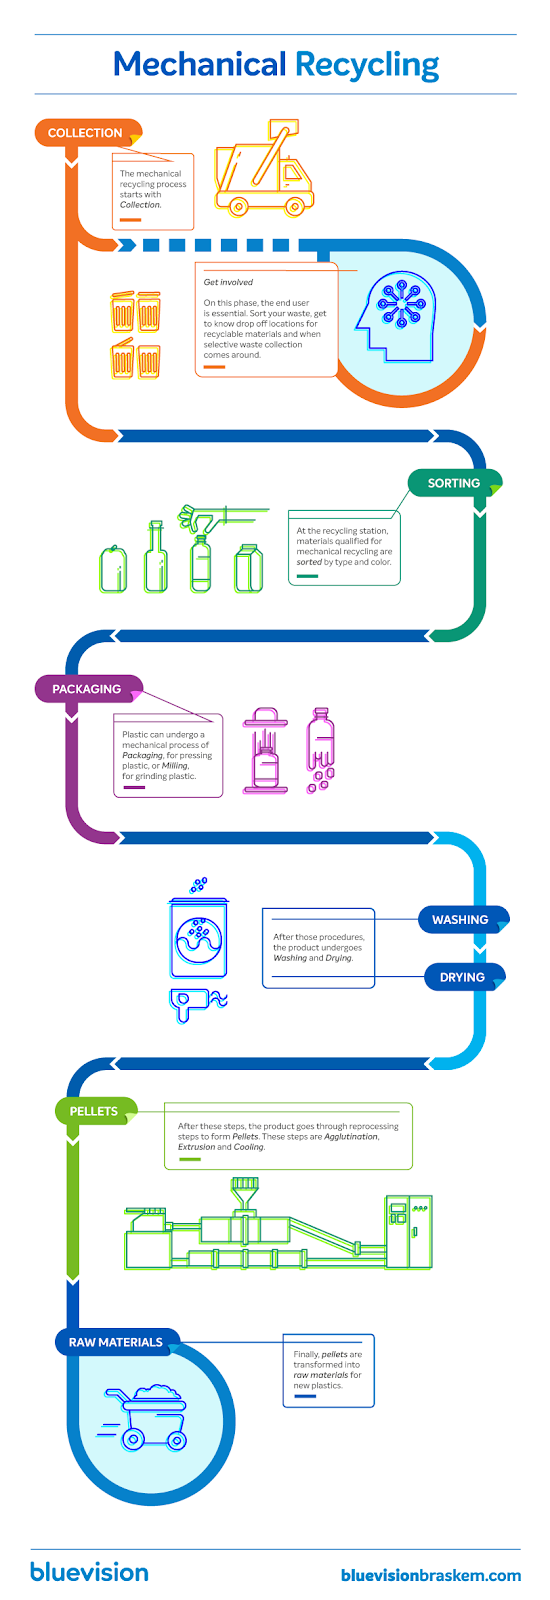 How to Design a Process Infographic (And Where to Find Templates)